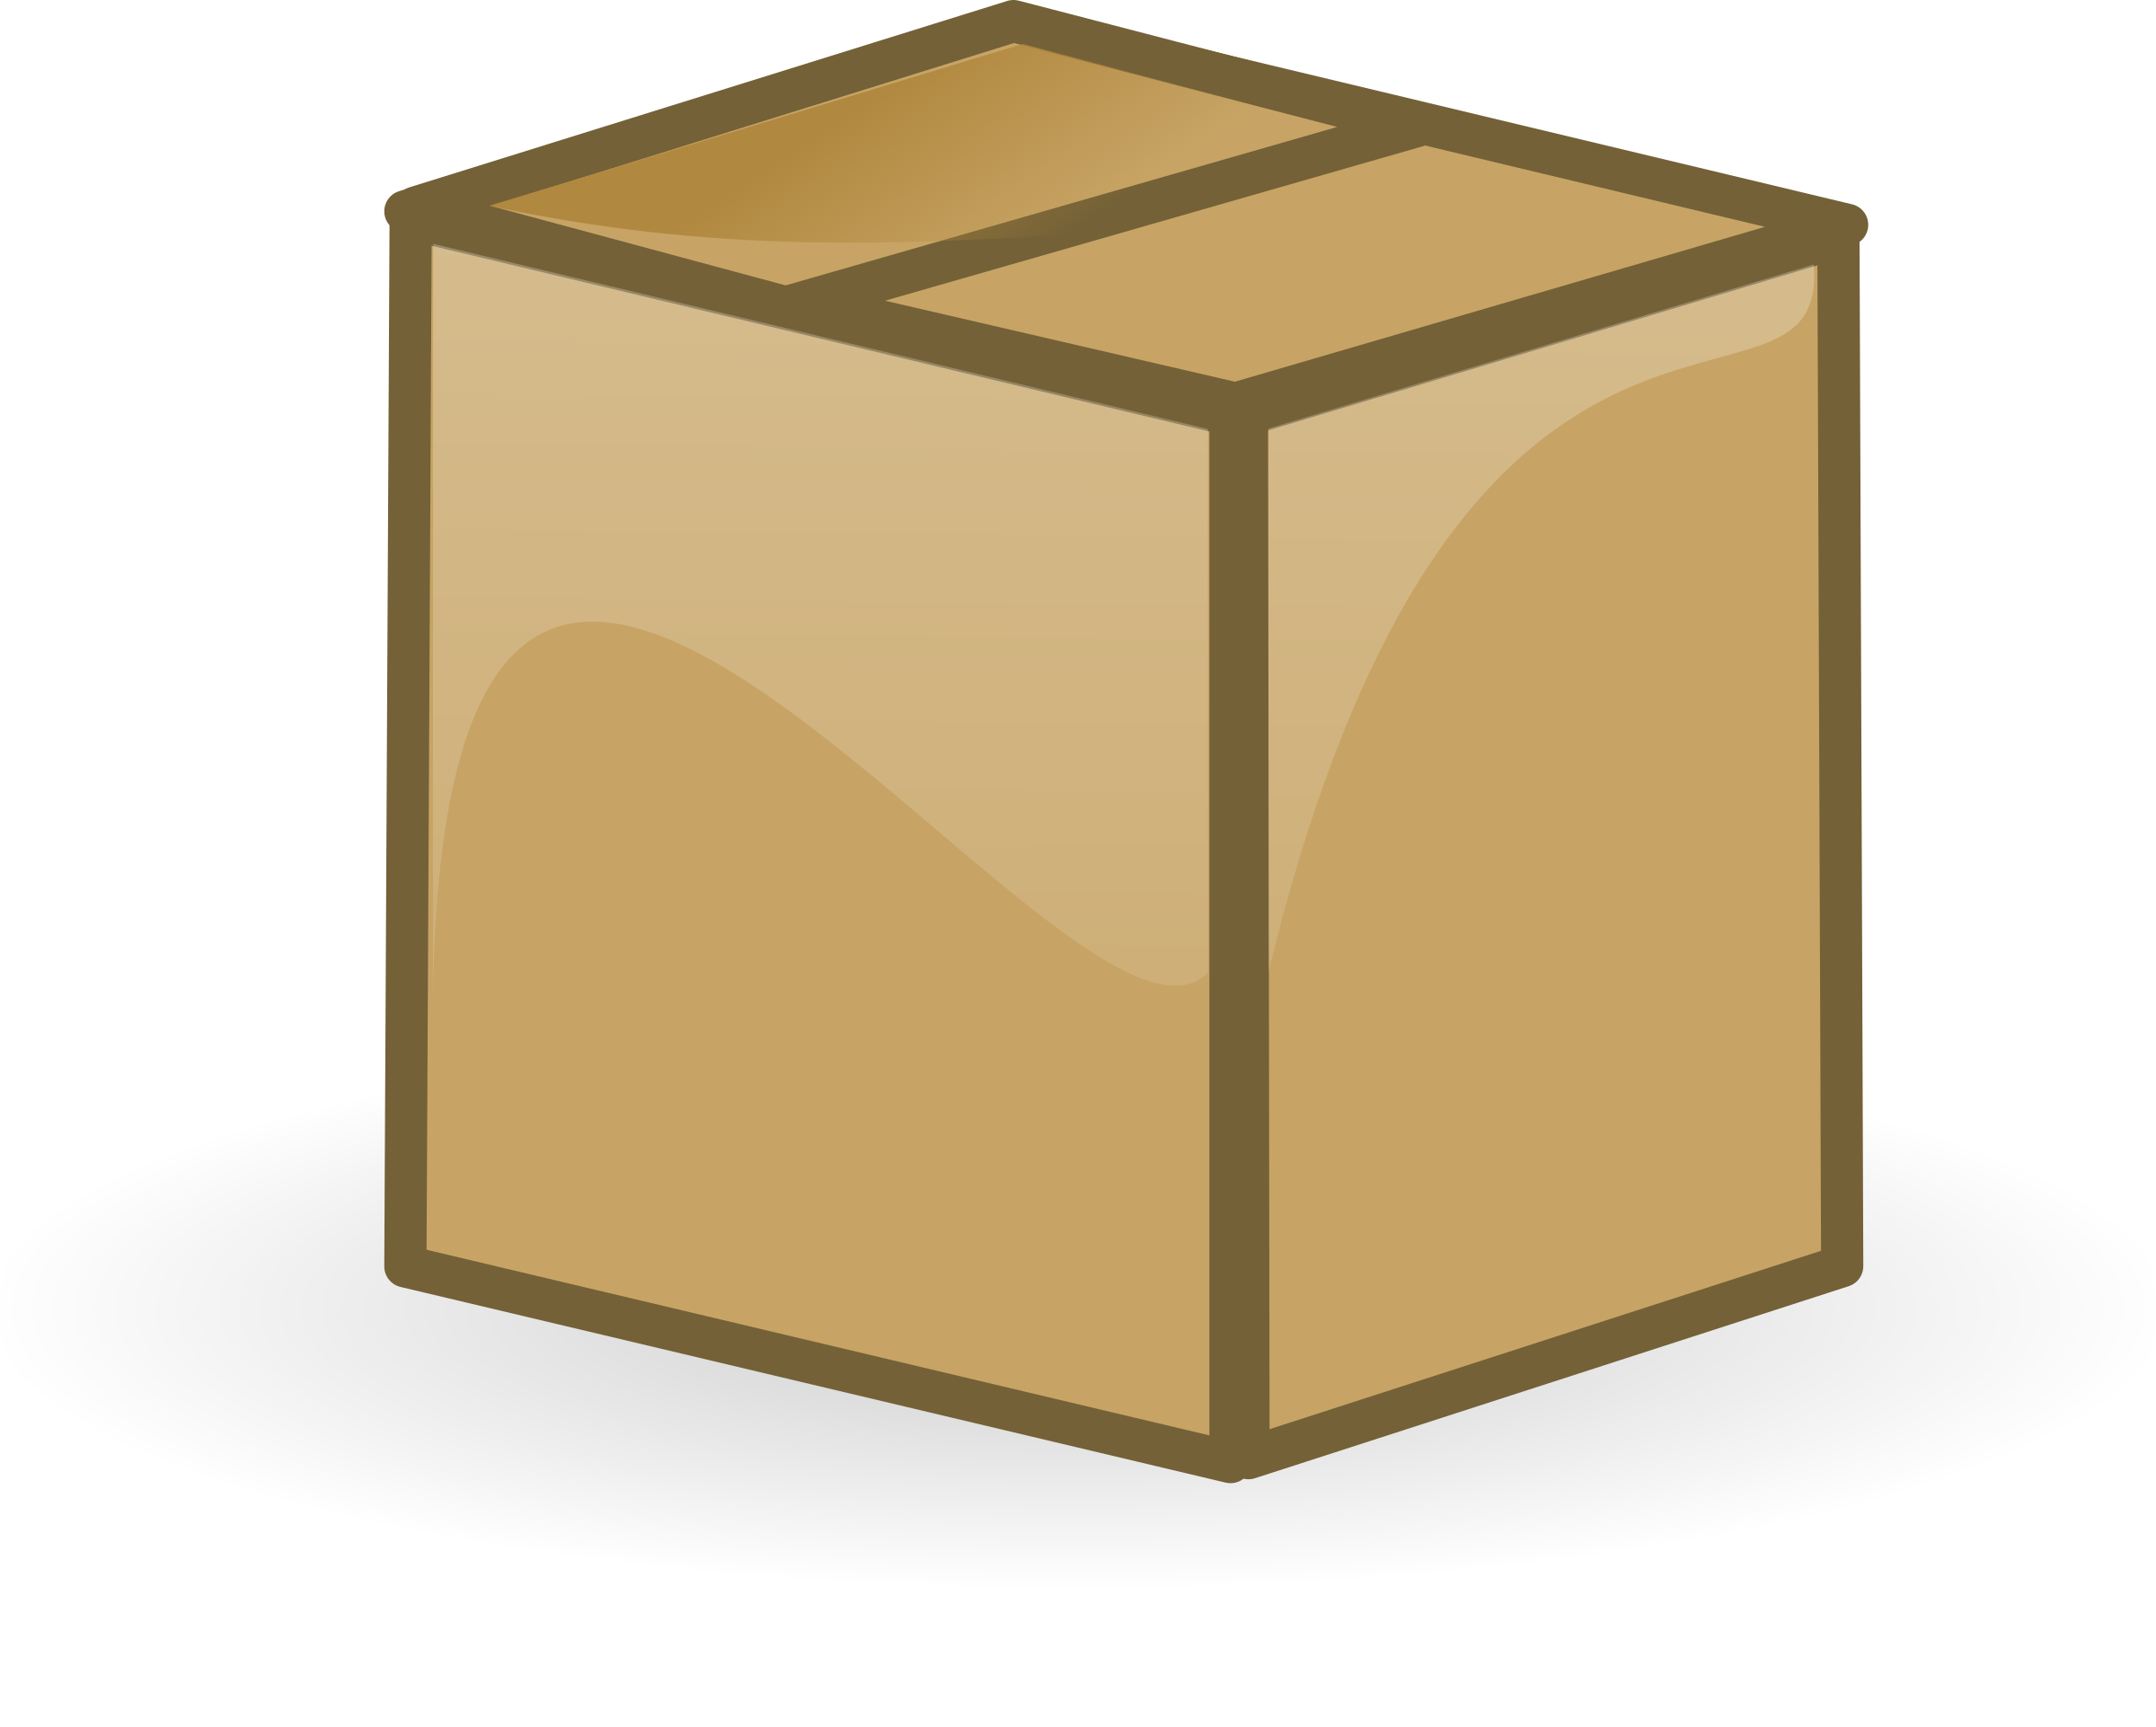 closed box by mcol